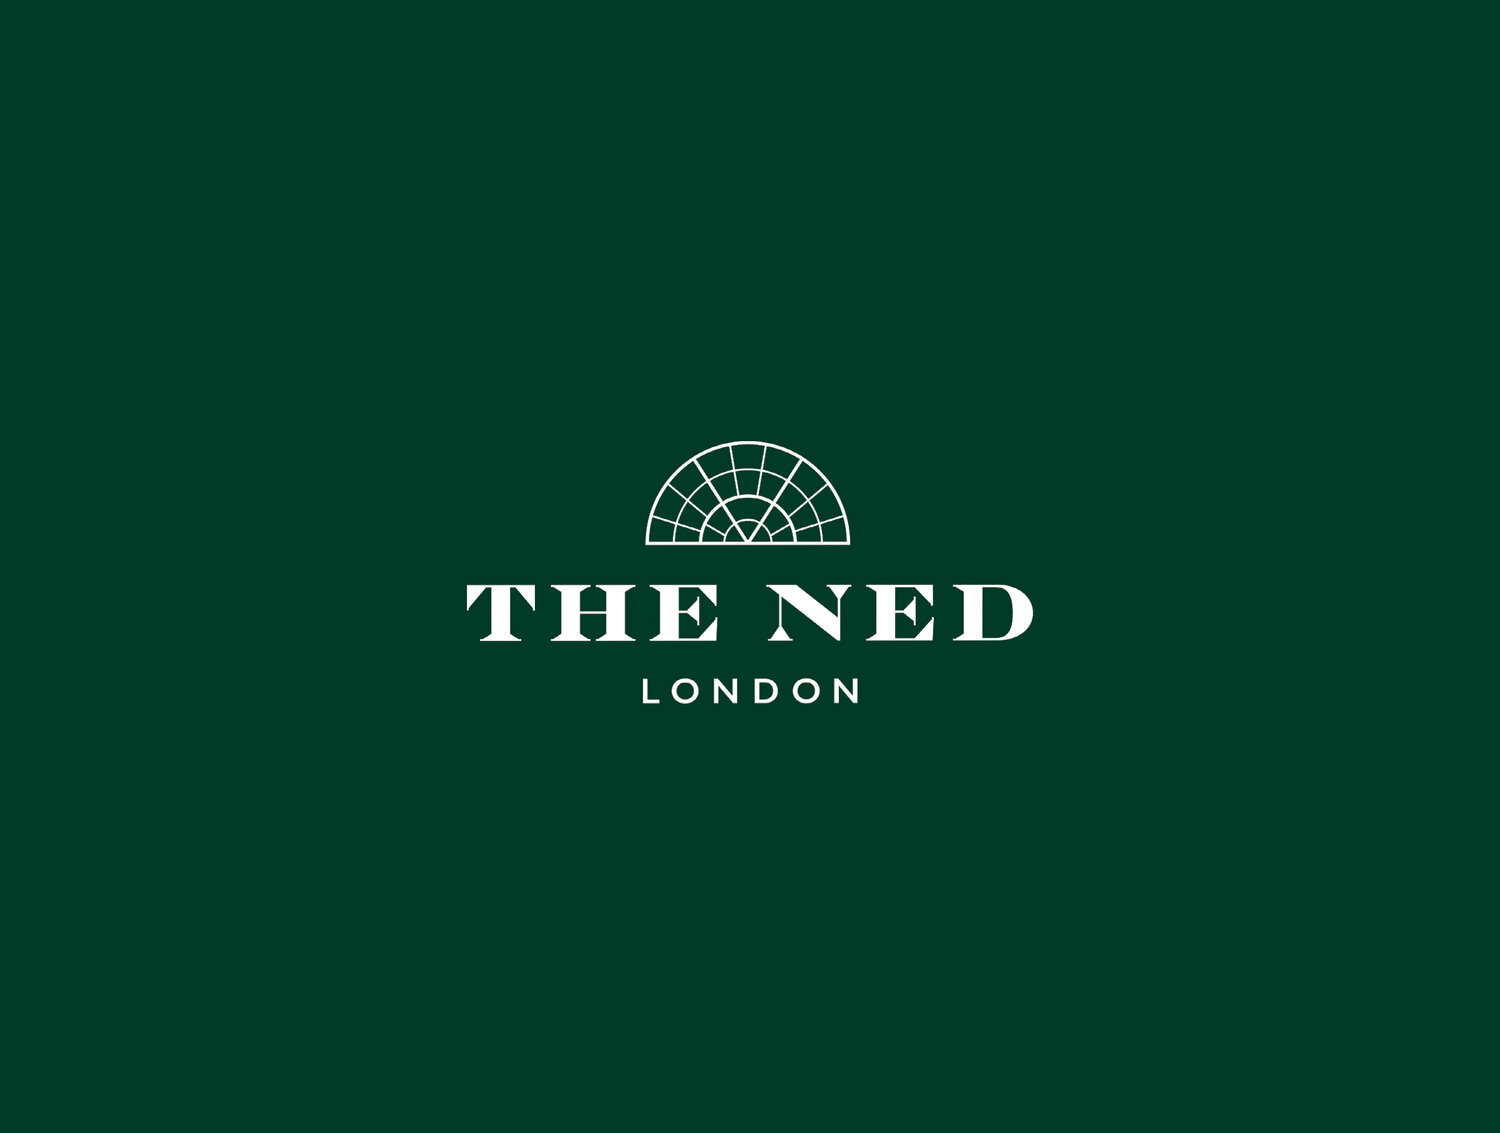 The Ned London